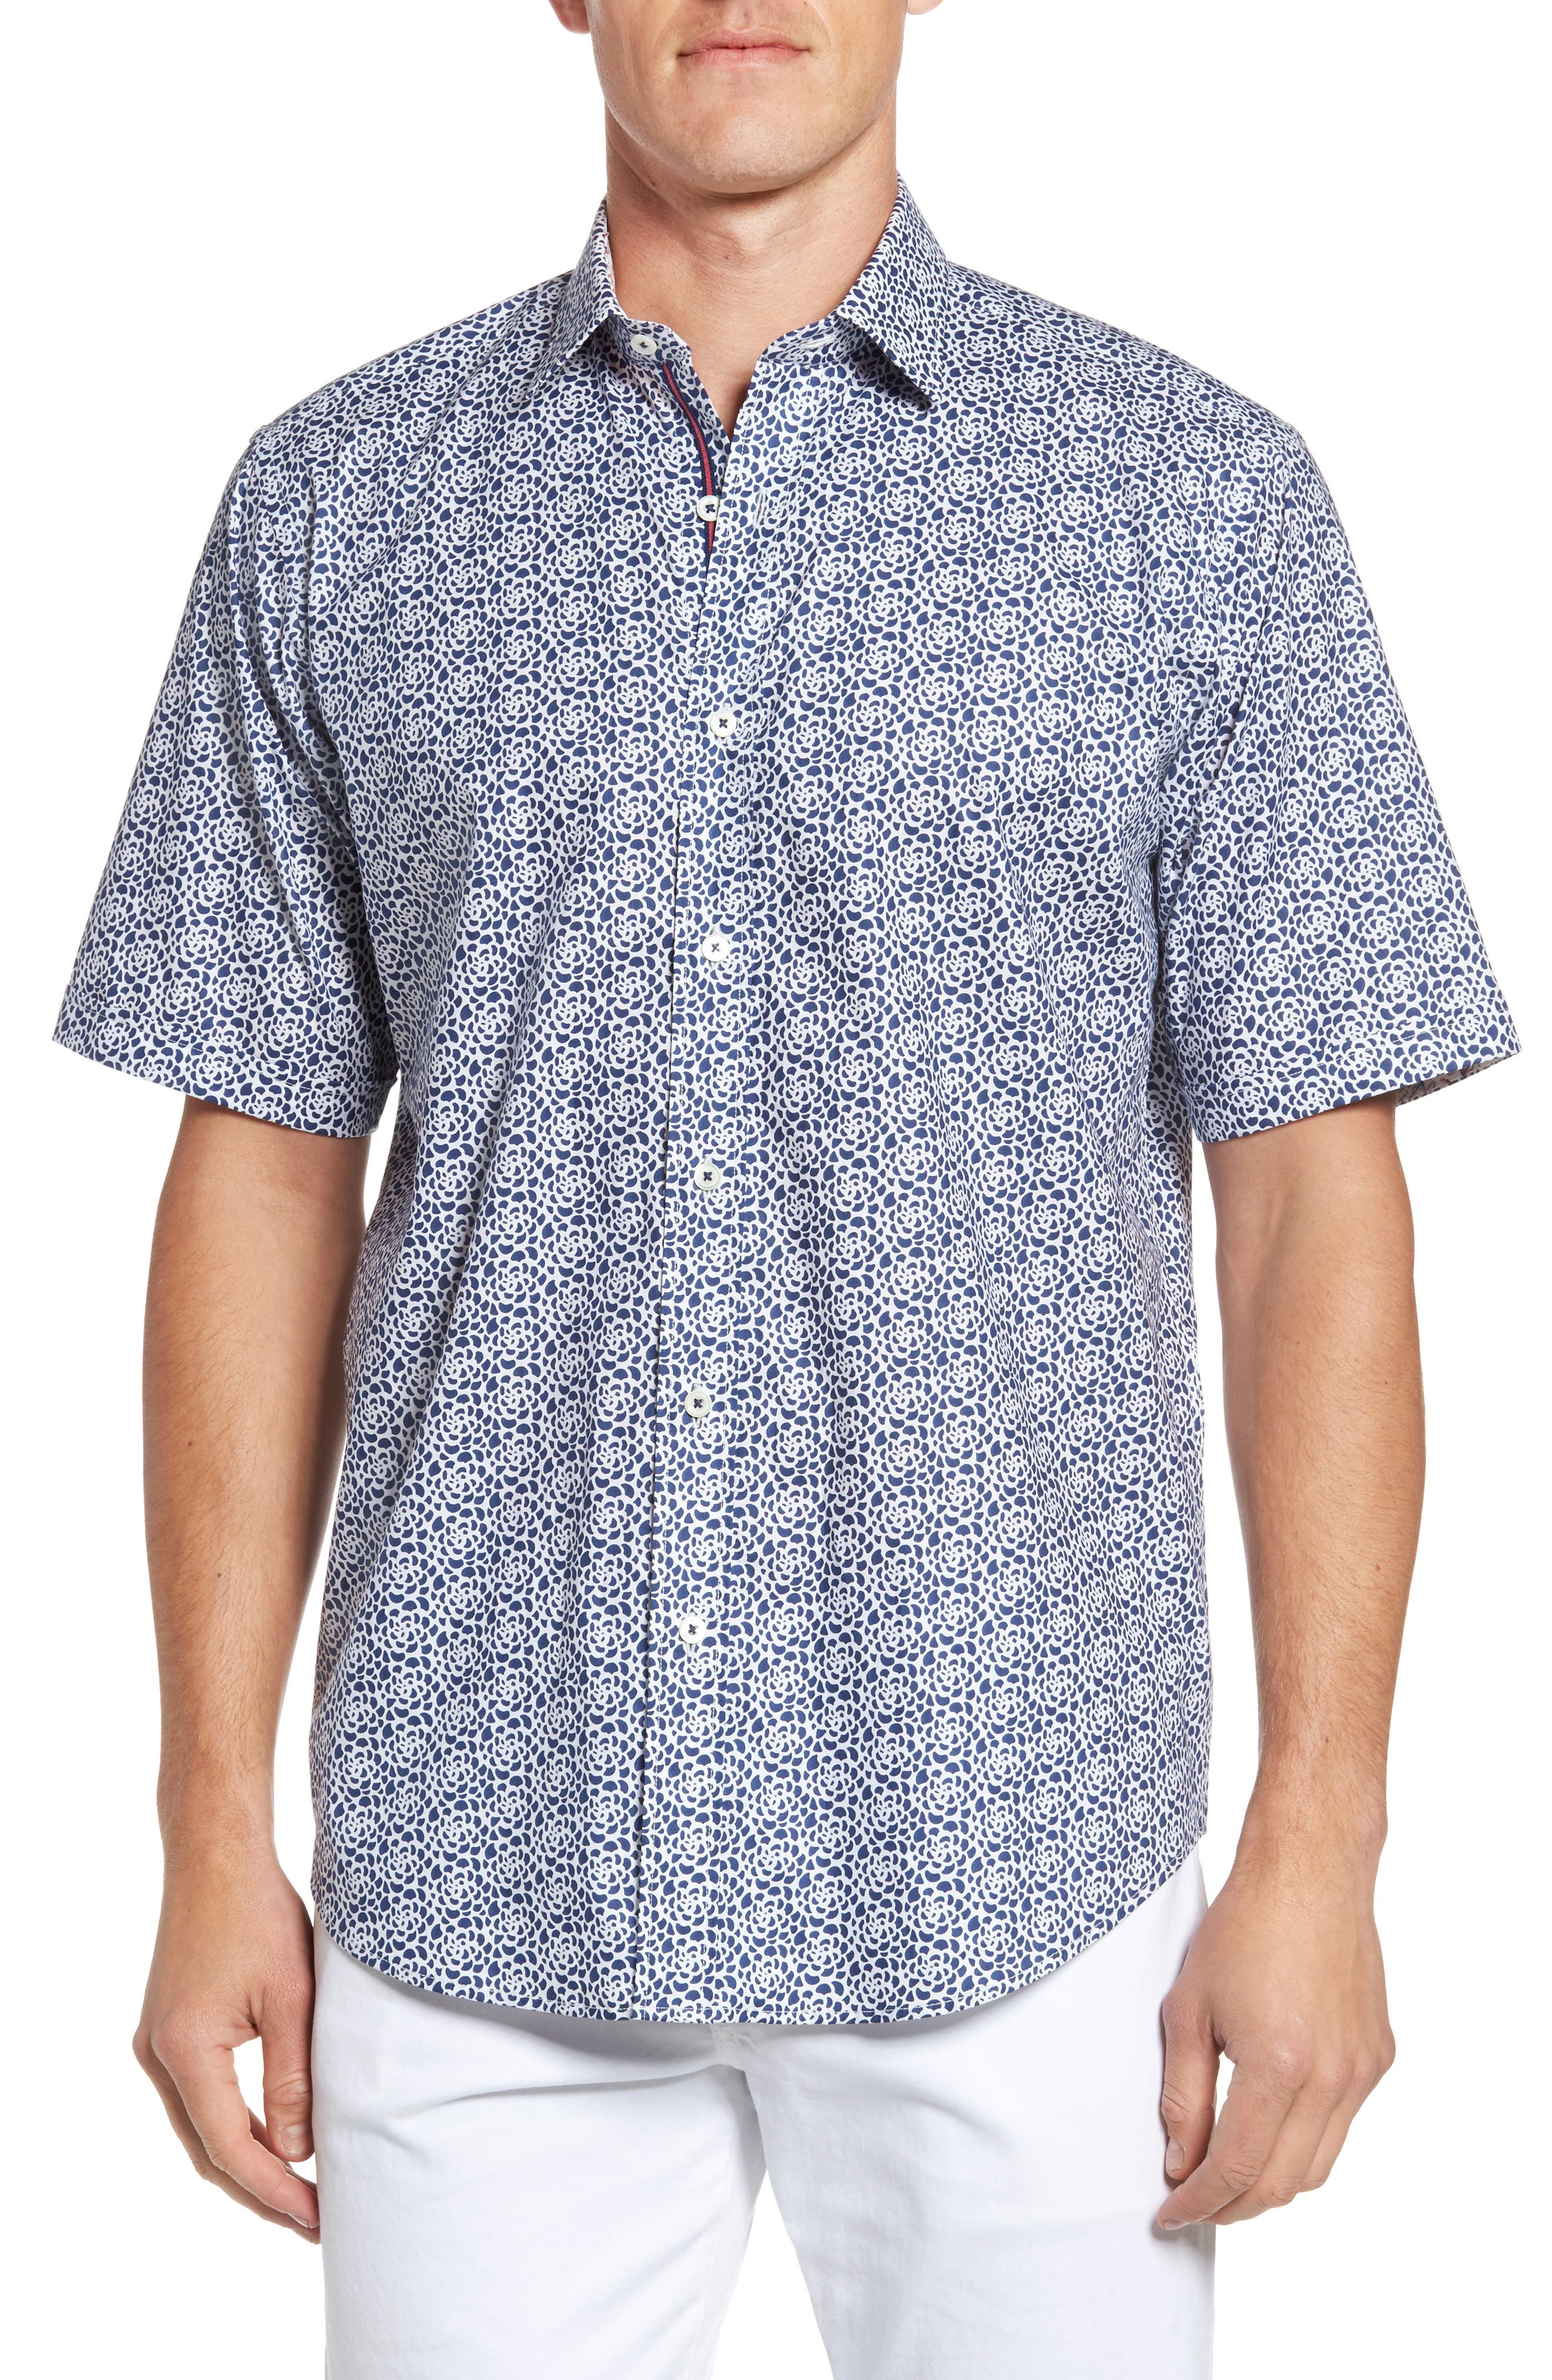 Classic Fit Print Short Sleeve Sport Shirt,                             Main thumbnail 1, color,                             411